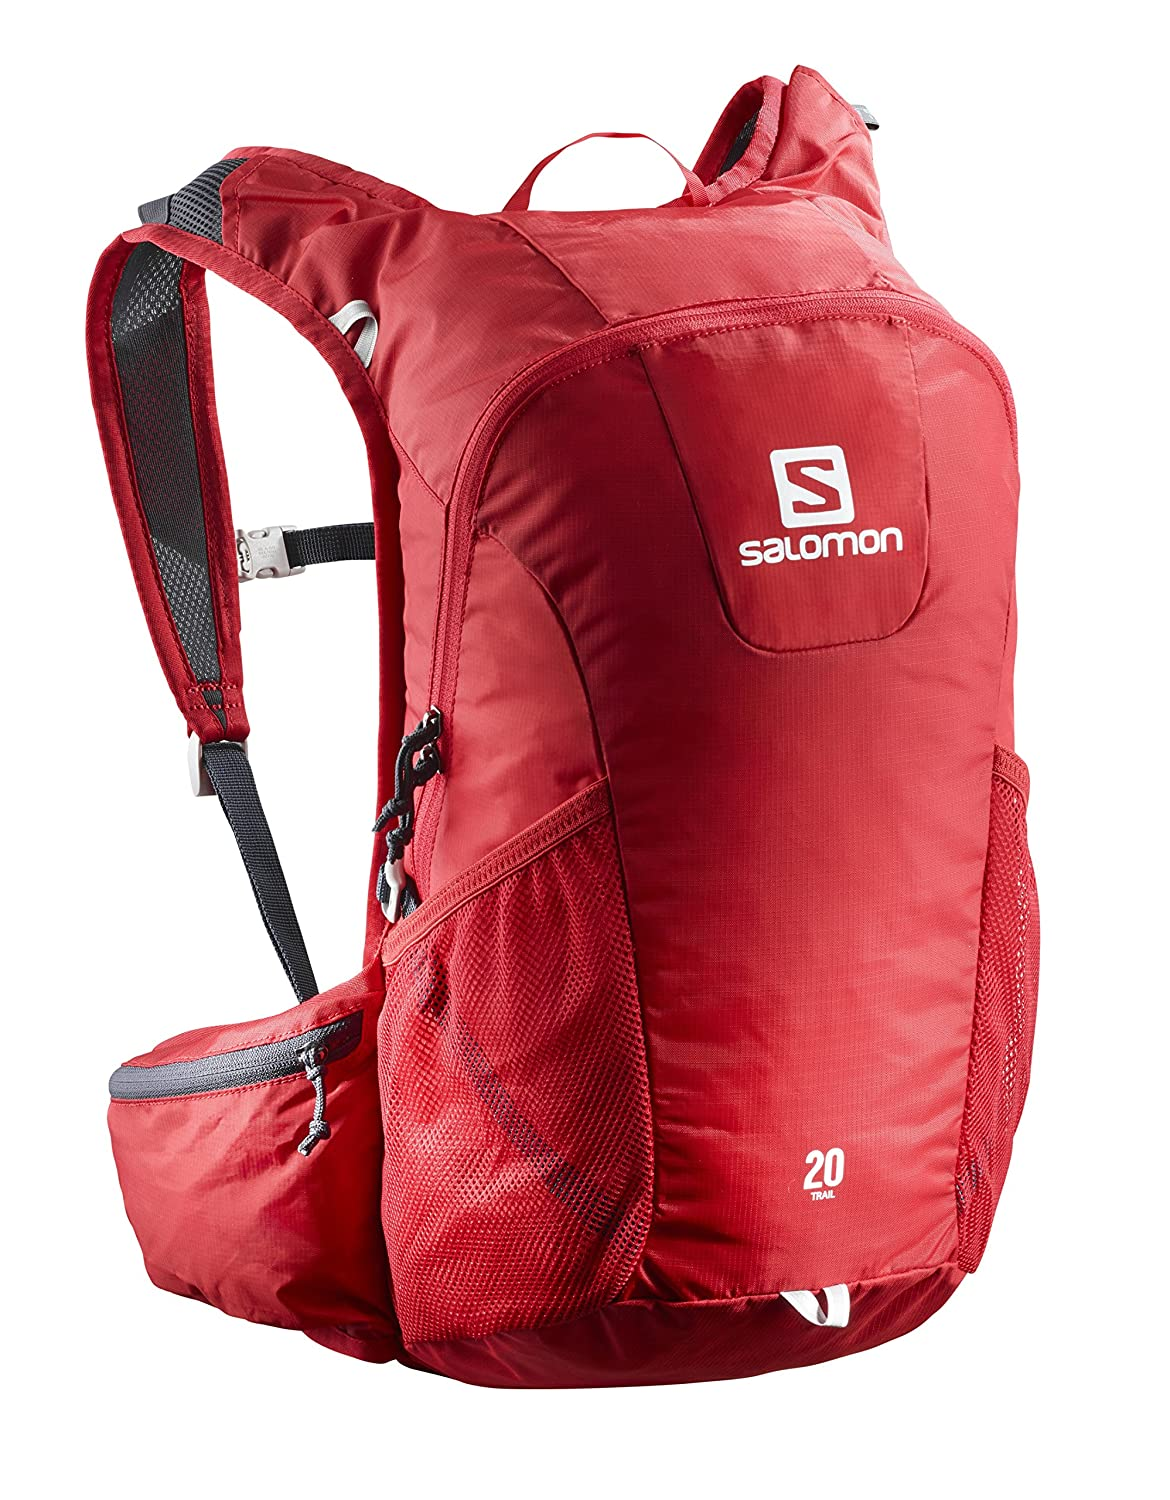 300424c7d SALOMON Trail 20 Running/Hiking Backpack